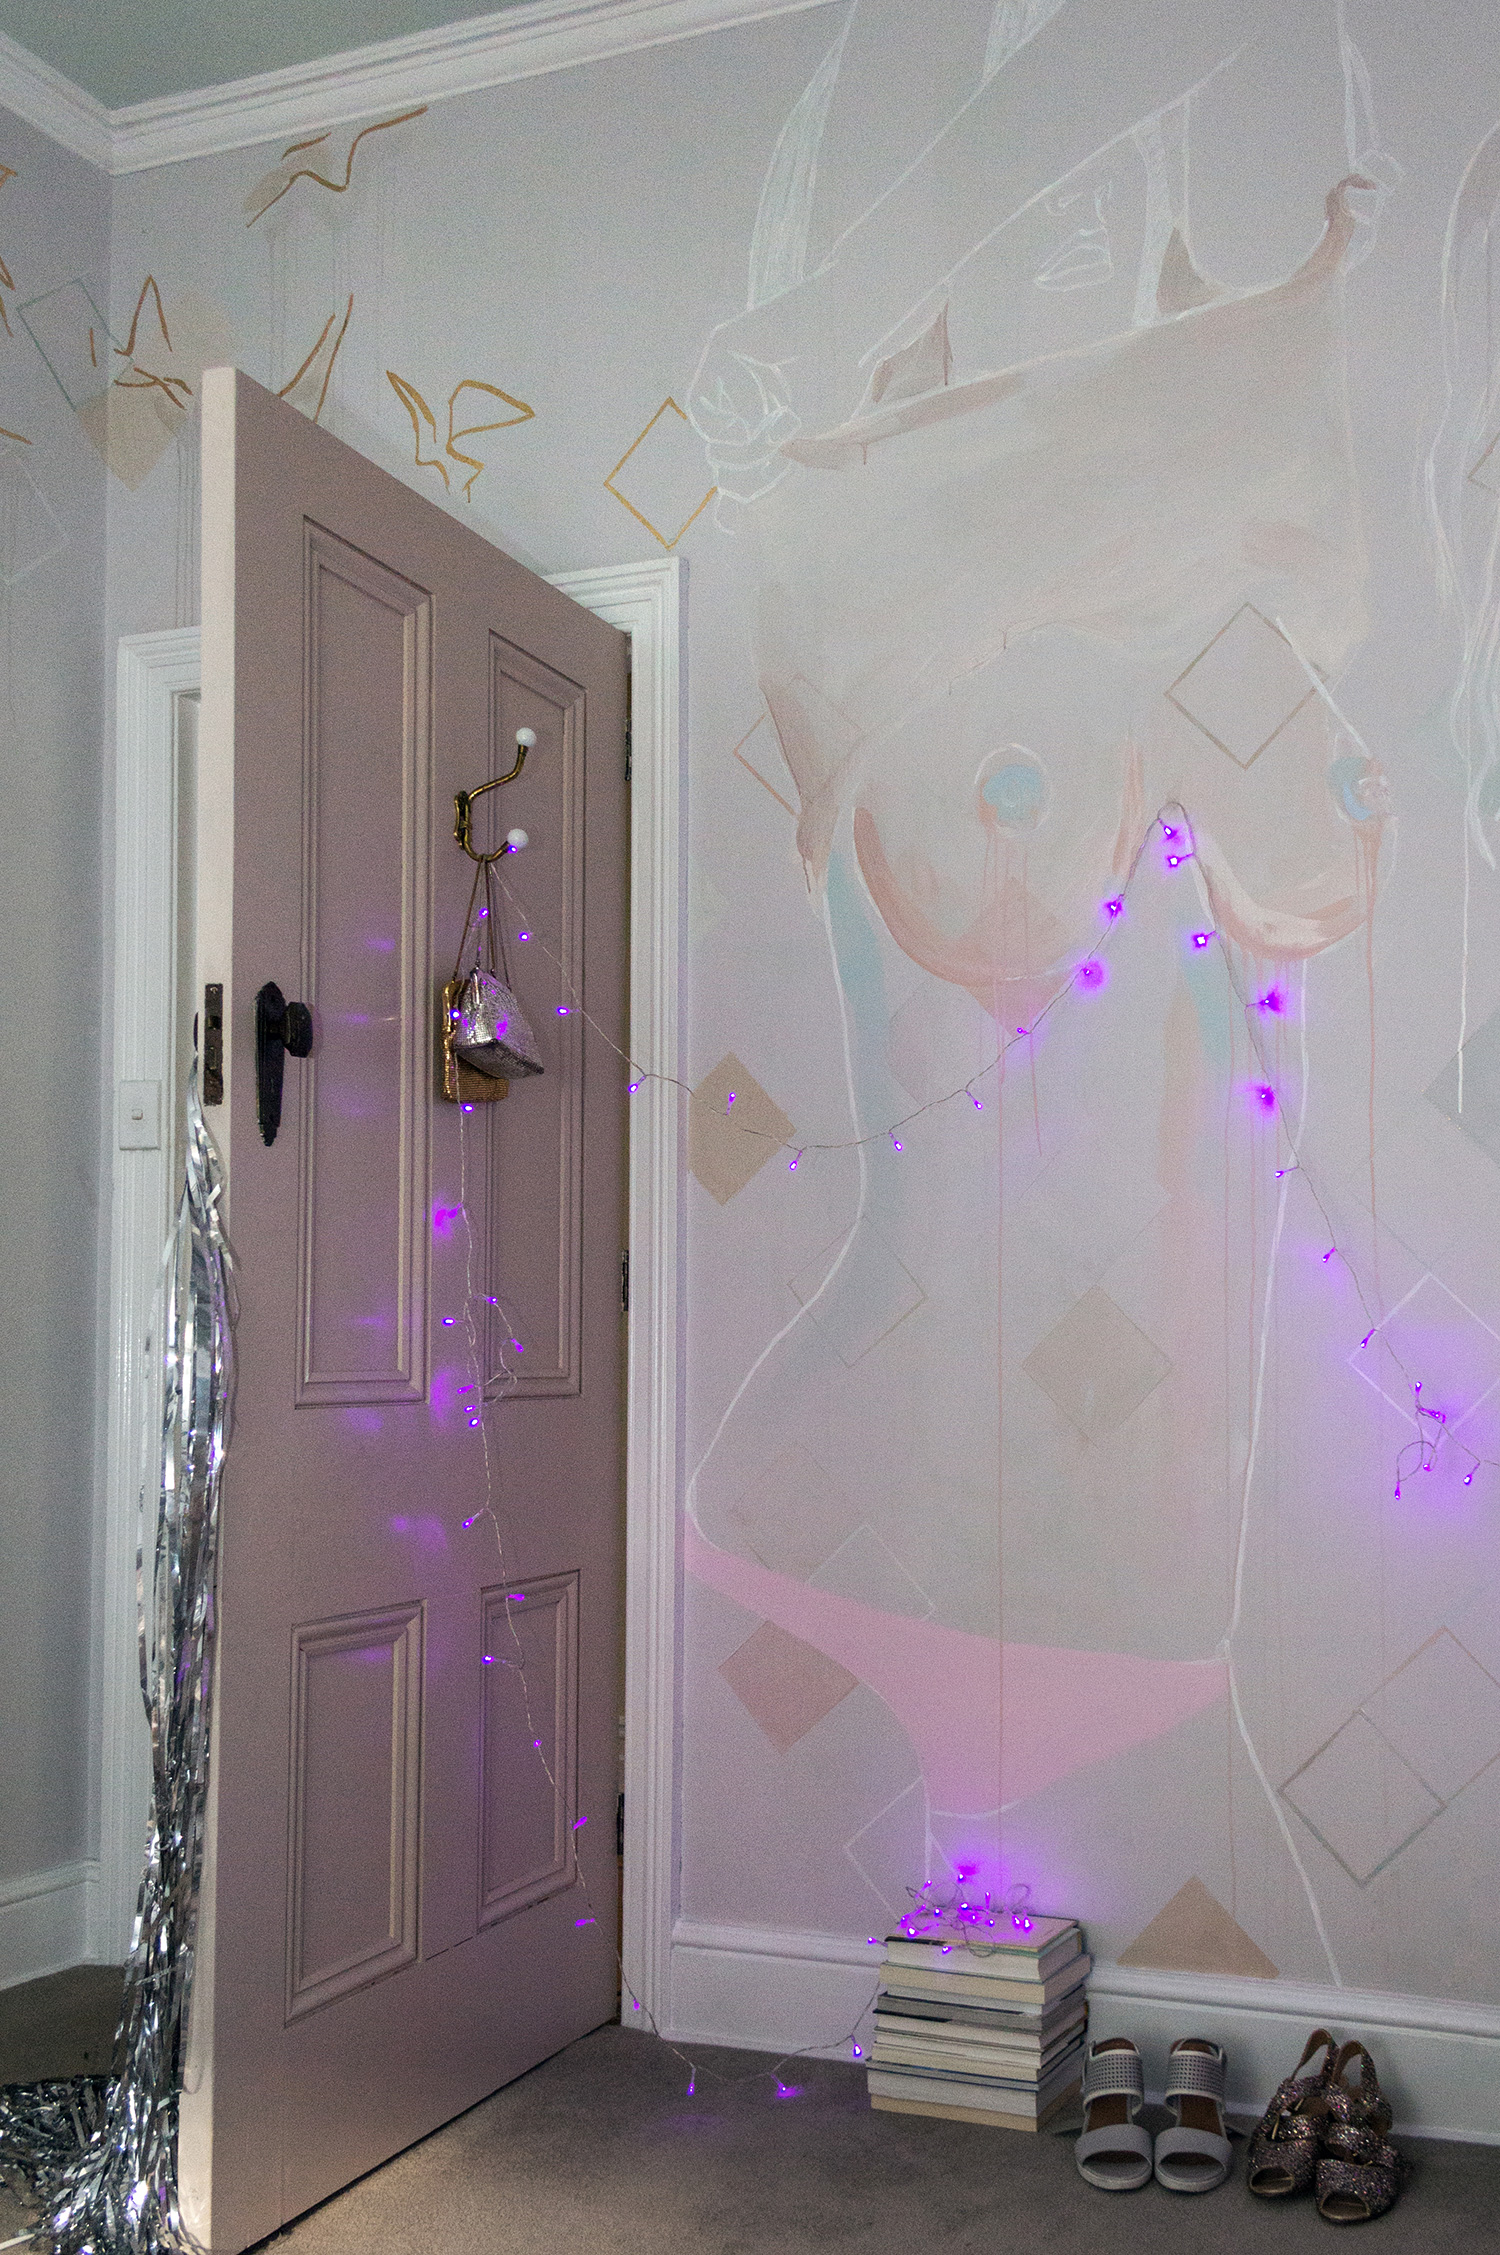 Topless woman mural - female is taking her top off and exposing her naked breasts. Painted in pastel and metallic colours with gold leaf birds flying out from the figure. Fairy lights hang under the woman's breasts and a silver metallic curtain hangs from the door handle.